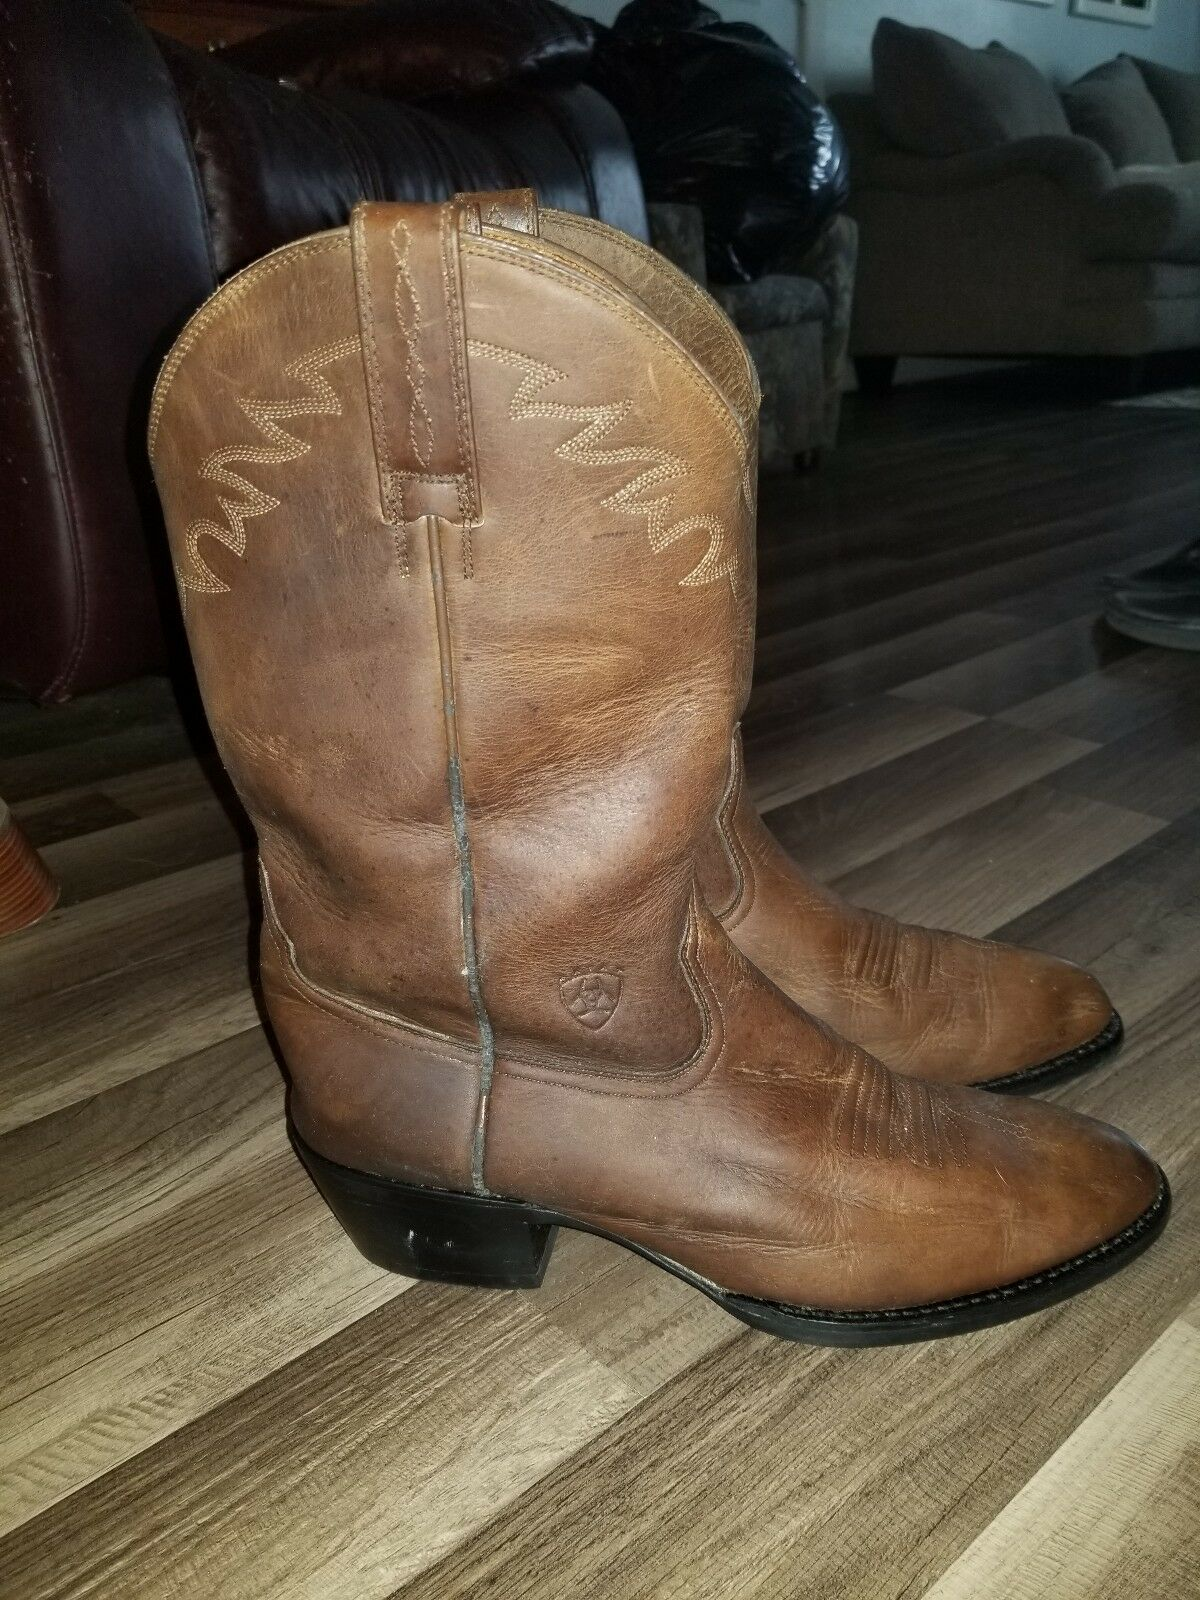 Ariat Men's Style 34625 Sedona Brown Leather Roper Cowboy Boots Size 11D